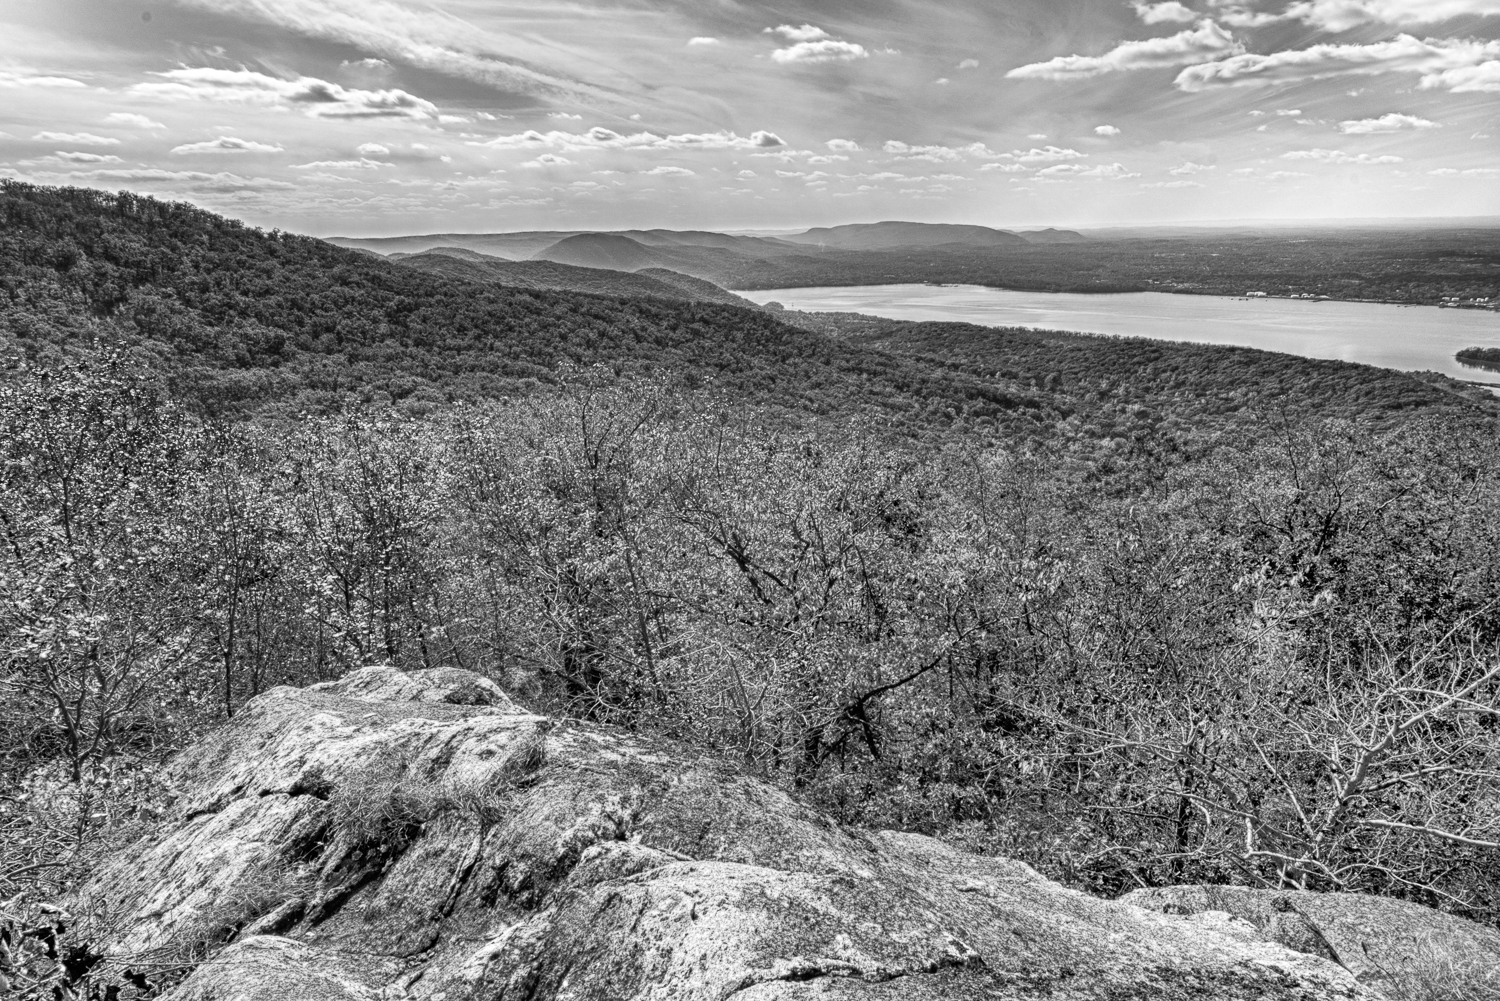 Mt. Beacon in Black and White